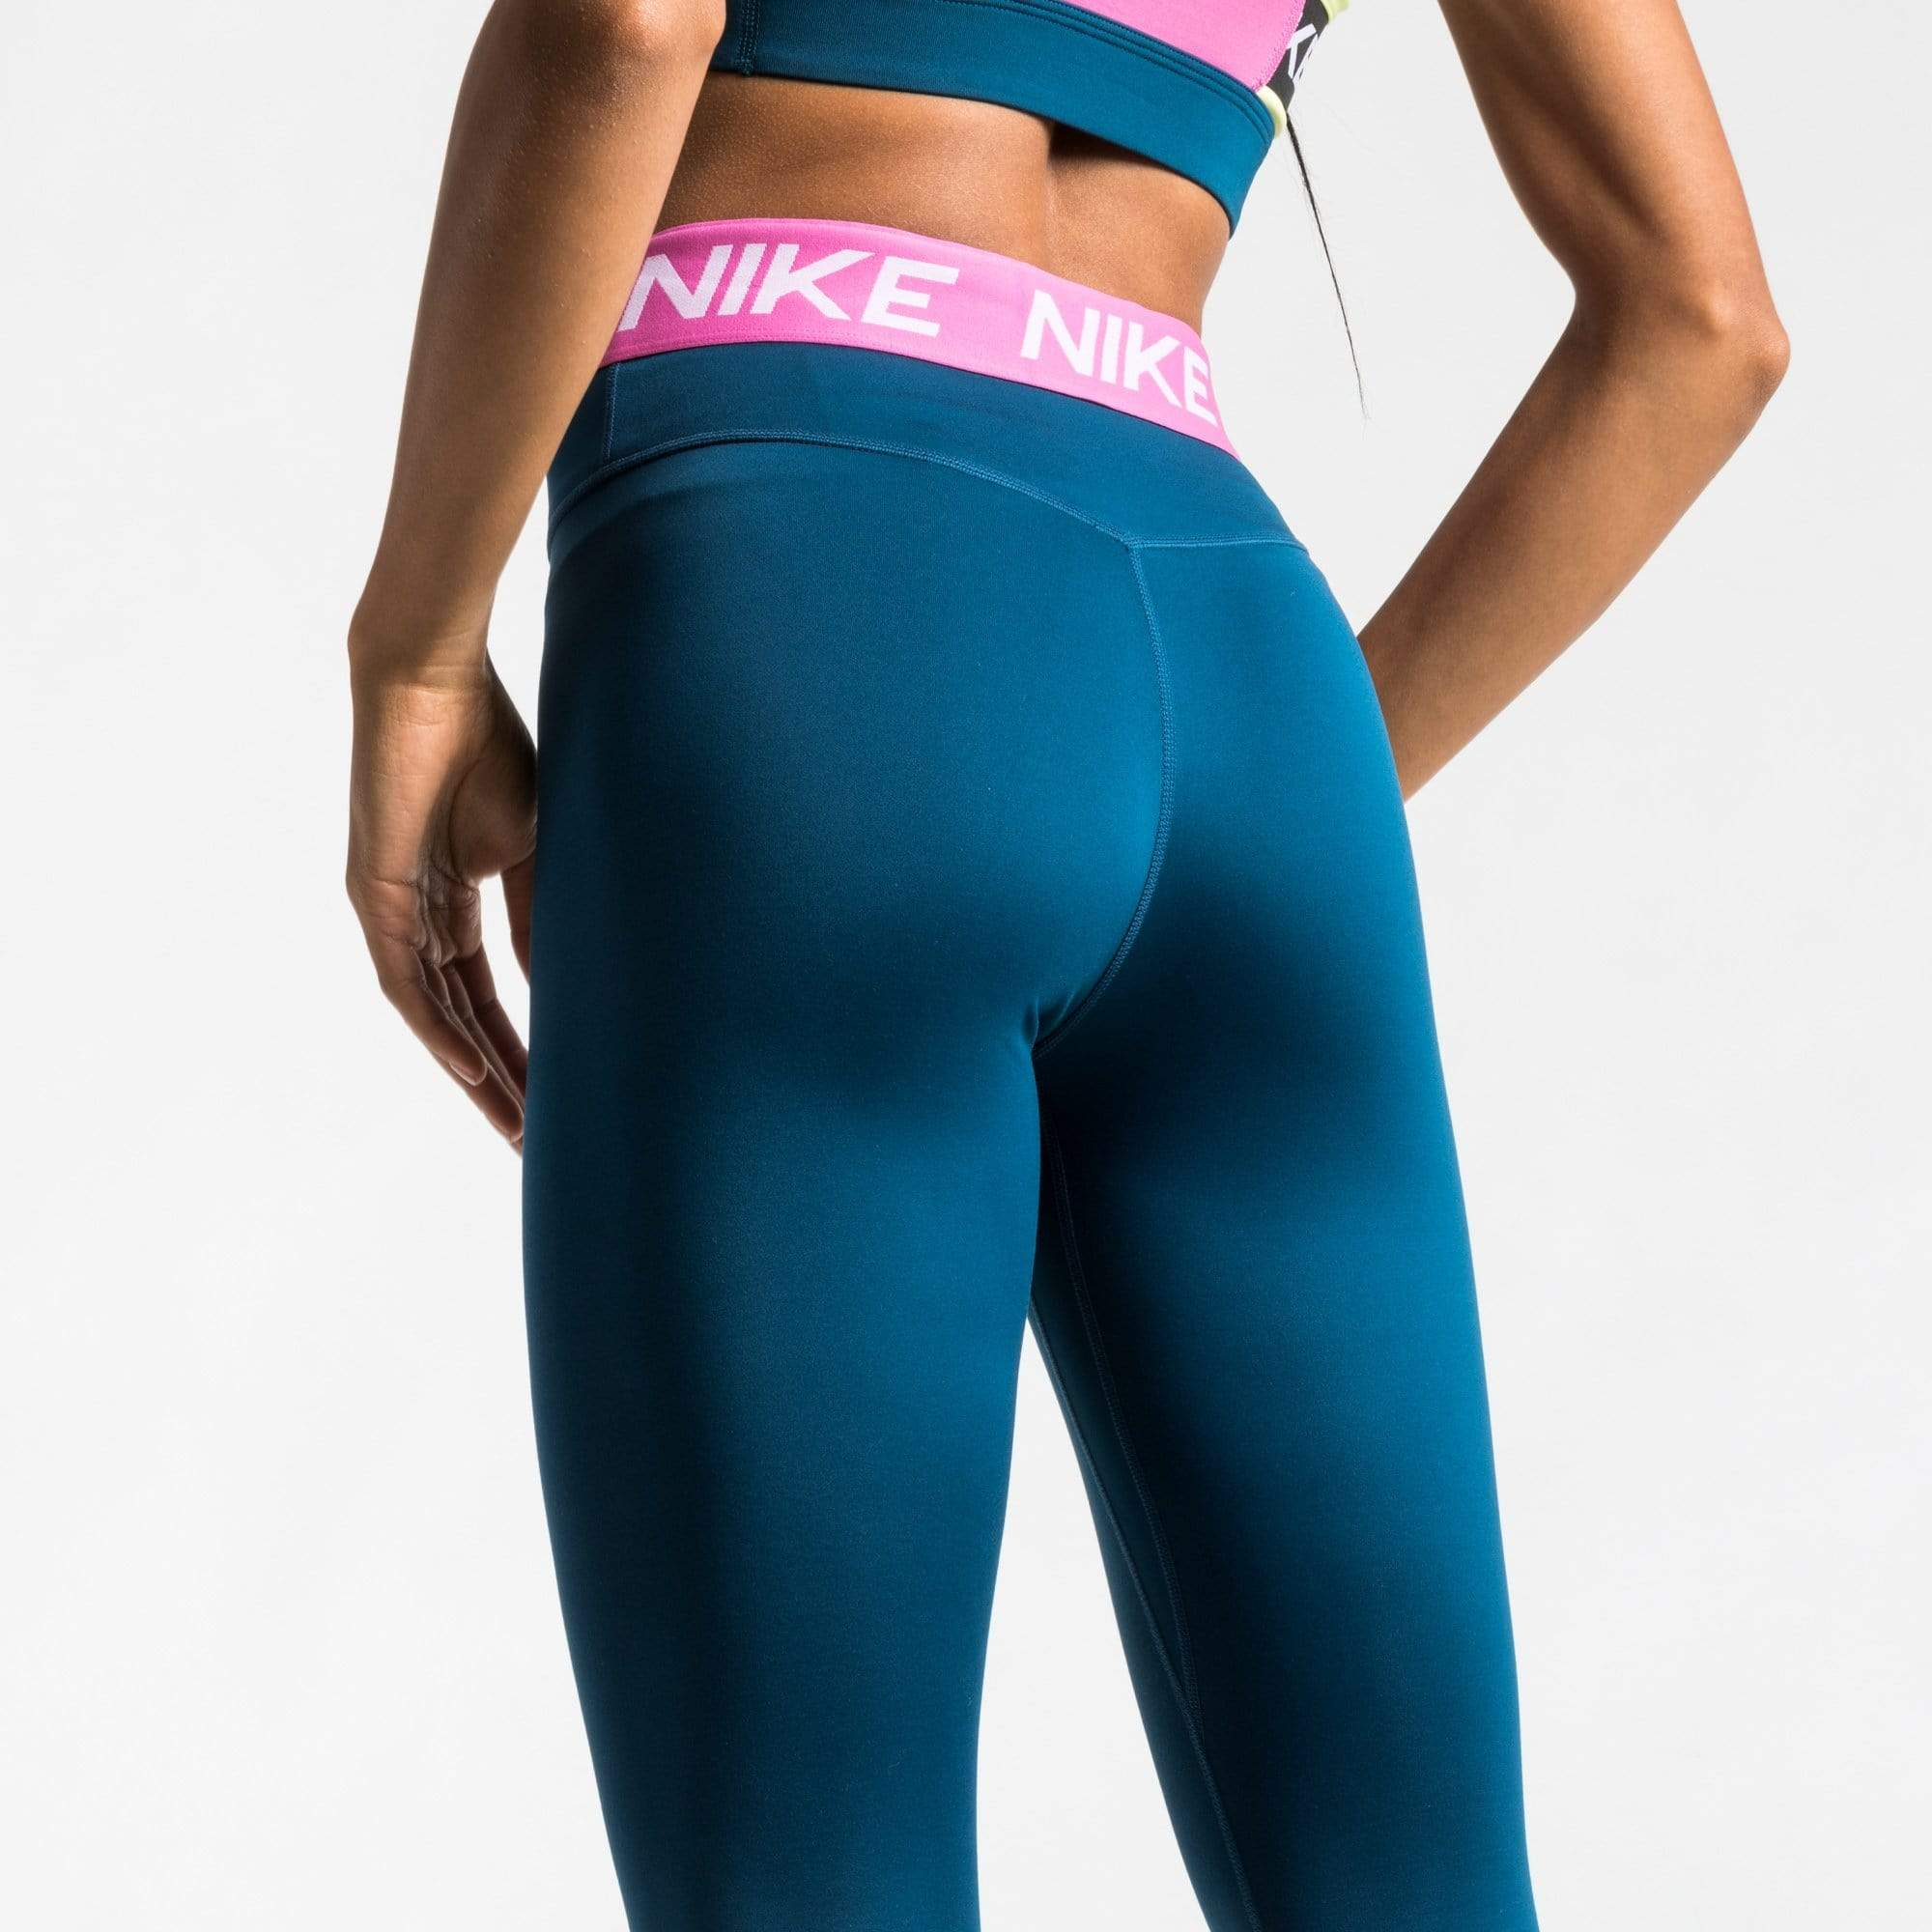 Nike One Tights Leggings